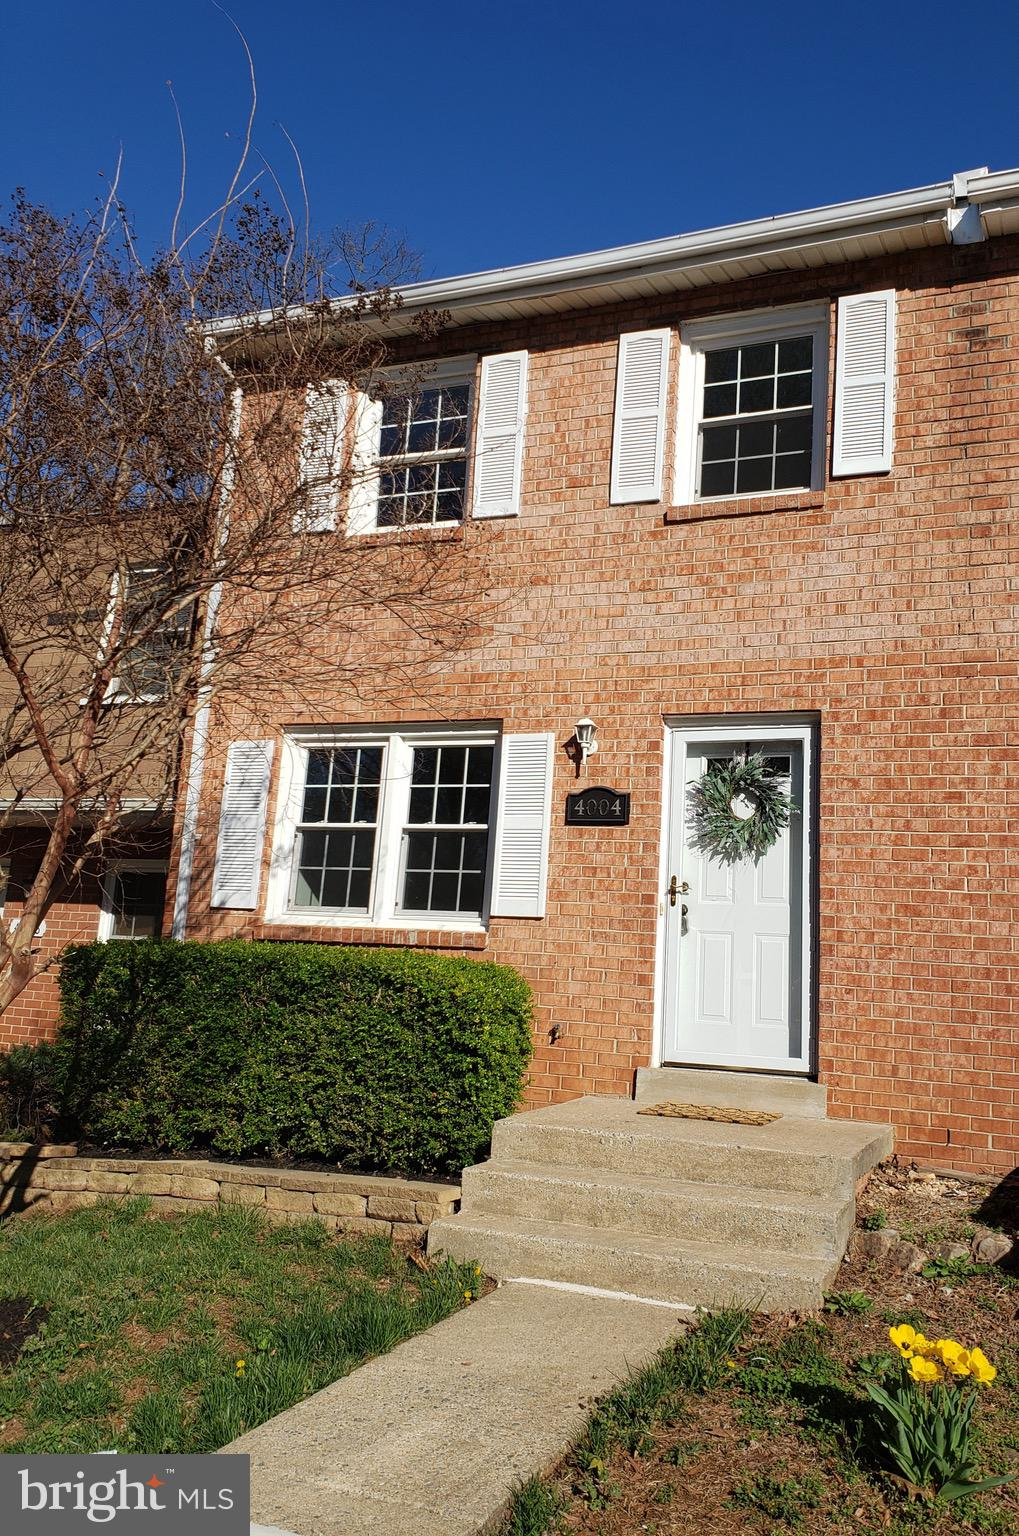 Welcome to comfortable living and ultra convenience this stunning property offers. Spacious floorplan with over 1200 sqft. Newly refinished kitchen with custom tiling includes granite. Separate dining room steps out to enchanting patio overlooking lush trees.Huge Owners retreat with loads of closet space. Two large additional bedrooms and bath complete the upper level. Close to shopping, dining, entertainment.Enjoy quick access to major commuter rtes and slug line. Well maintained home with new roof and new carpet. See it before it's gone!